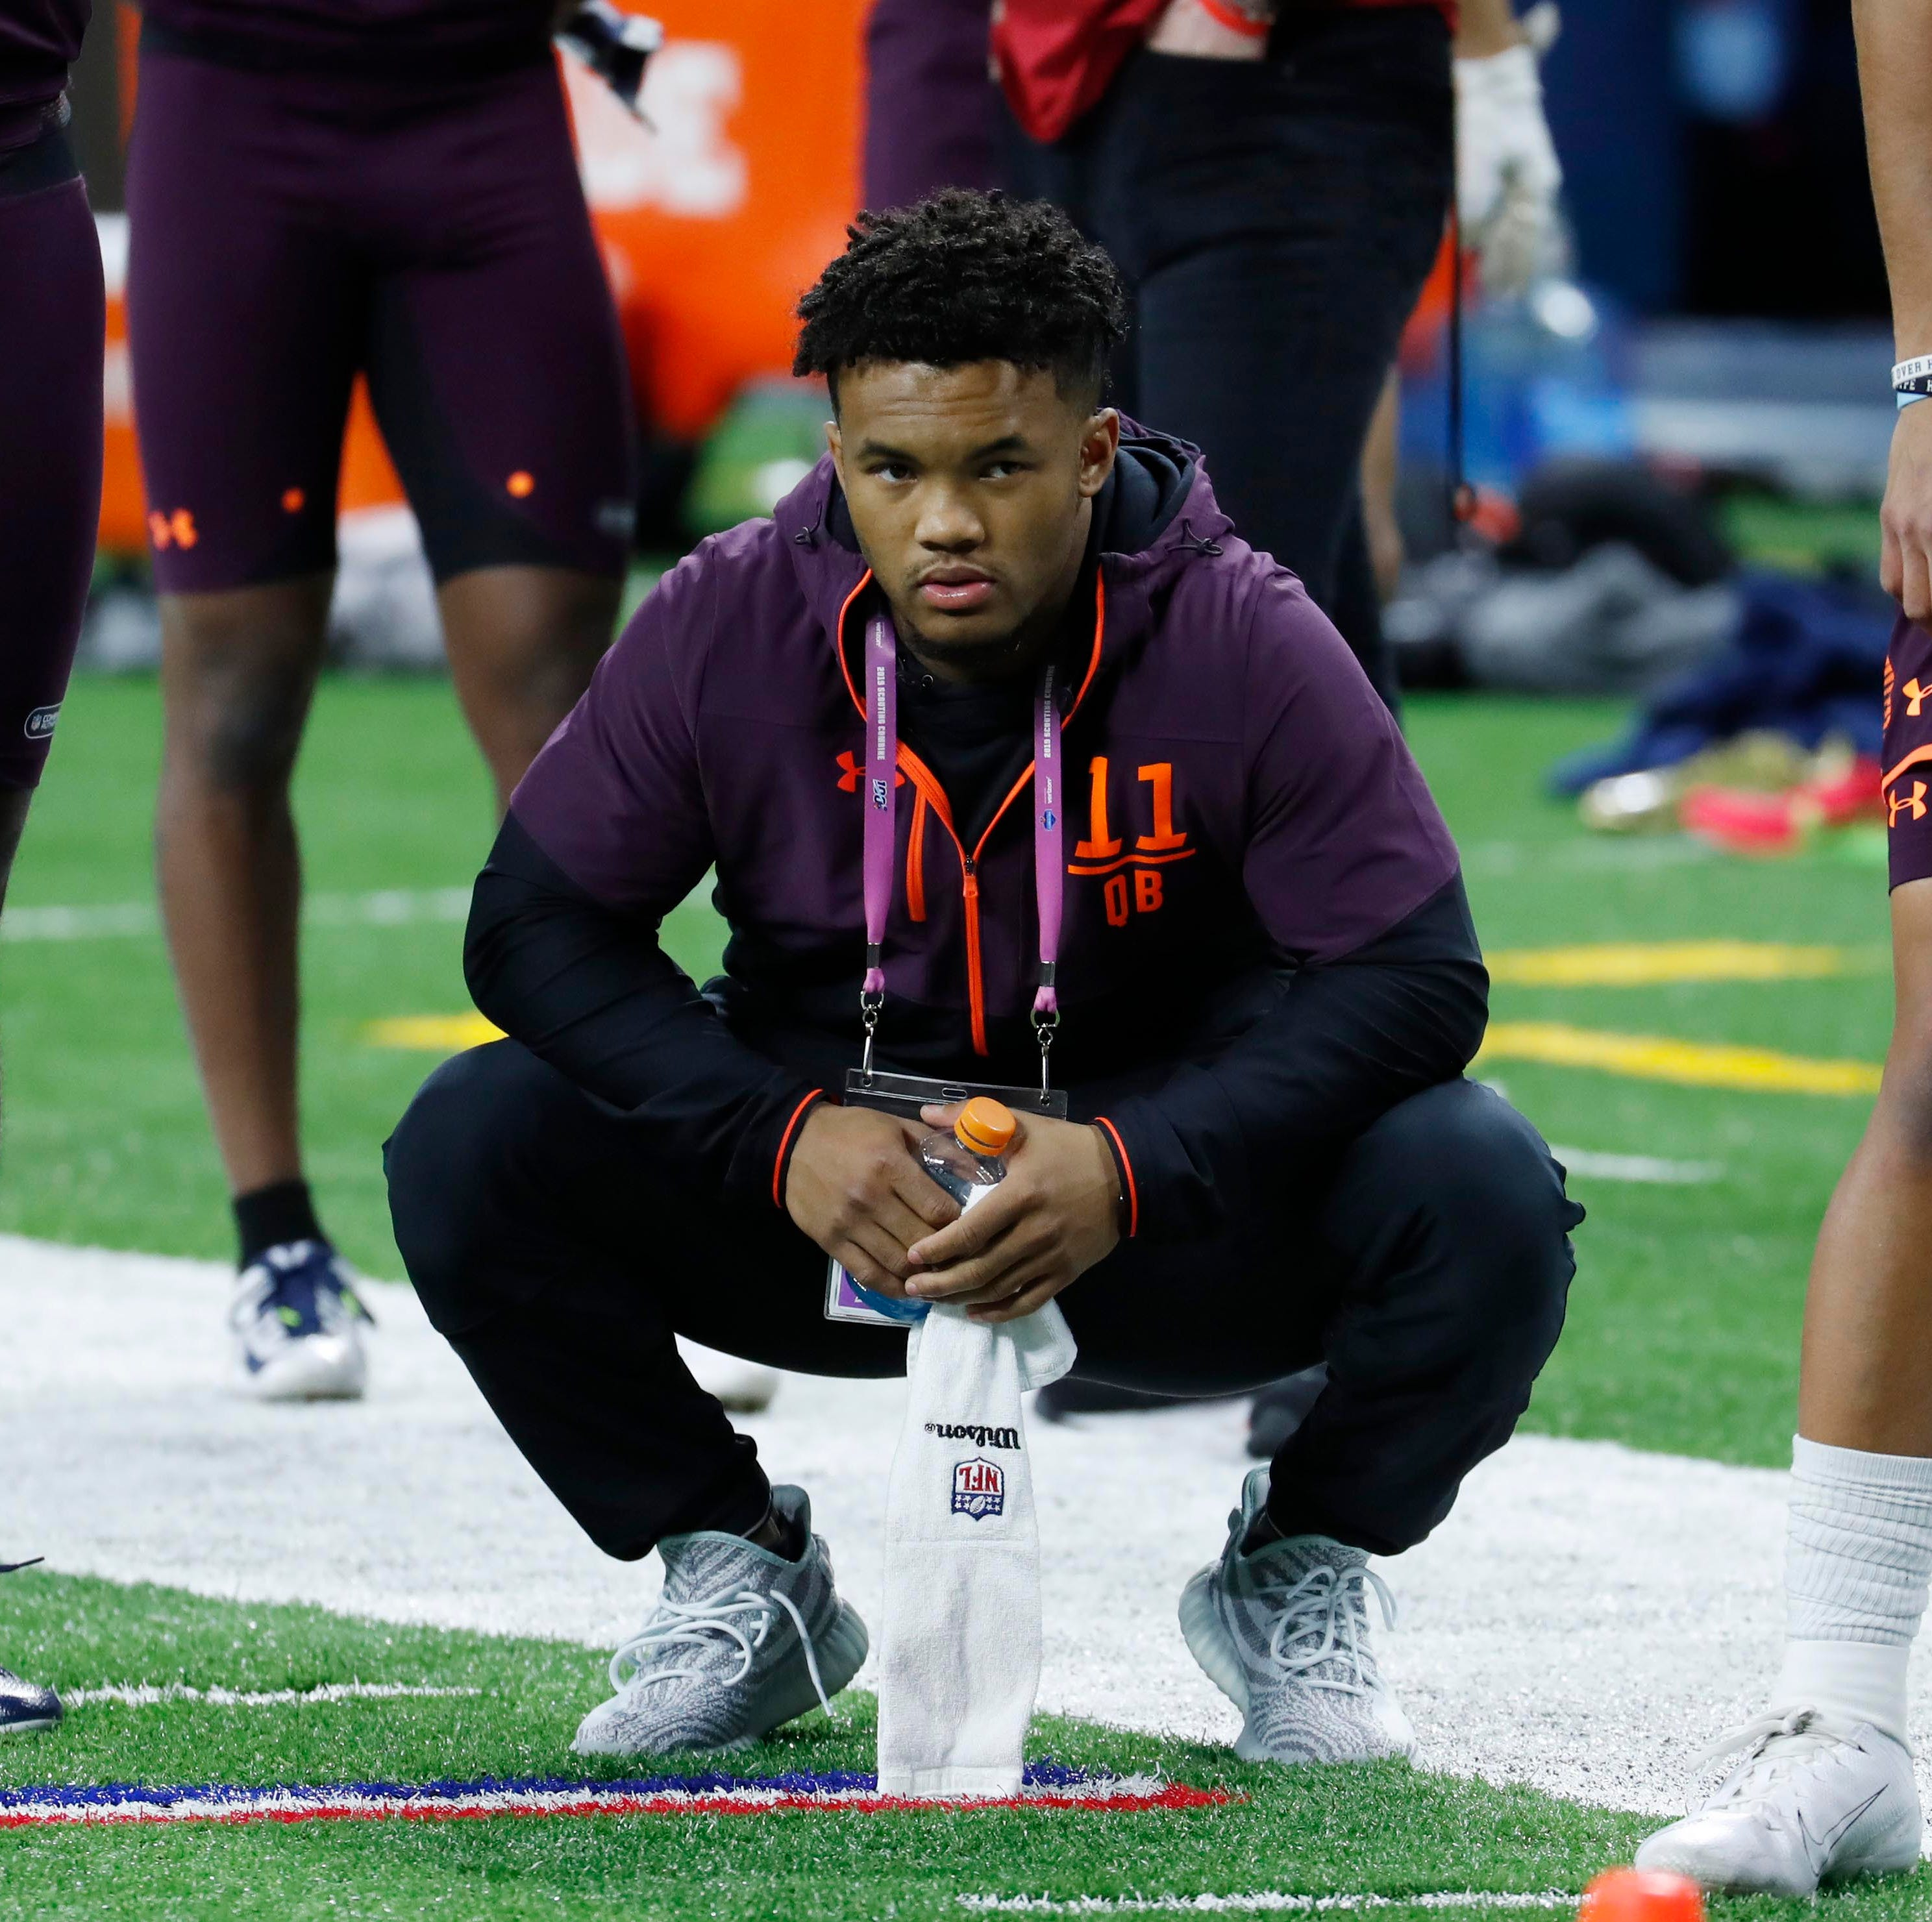 Noise about Kyler Murray and Cardinals figures to get louder at quarterback's Pro Day